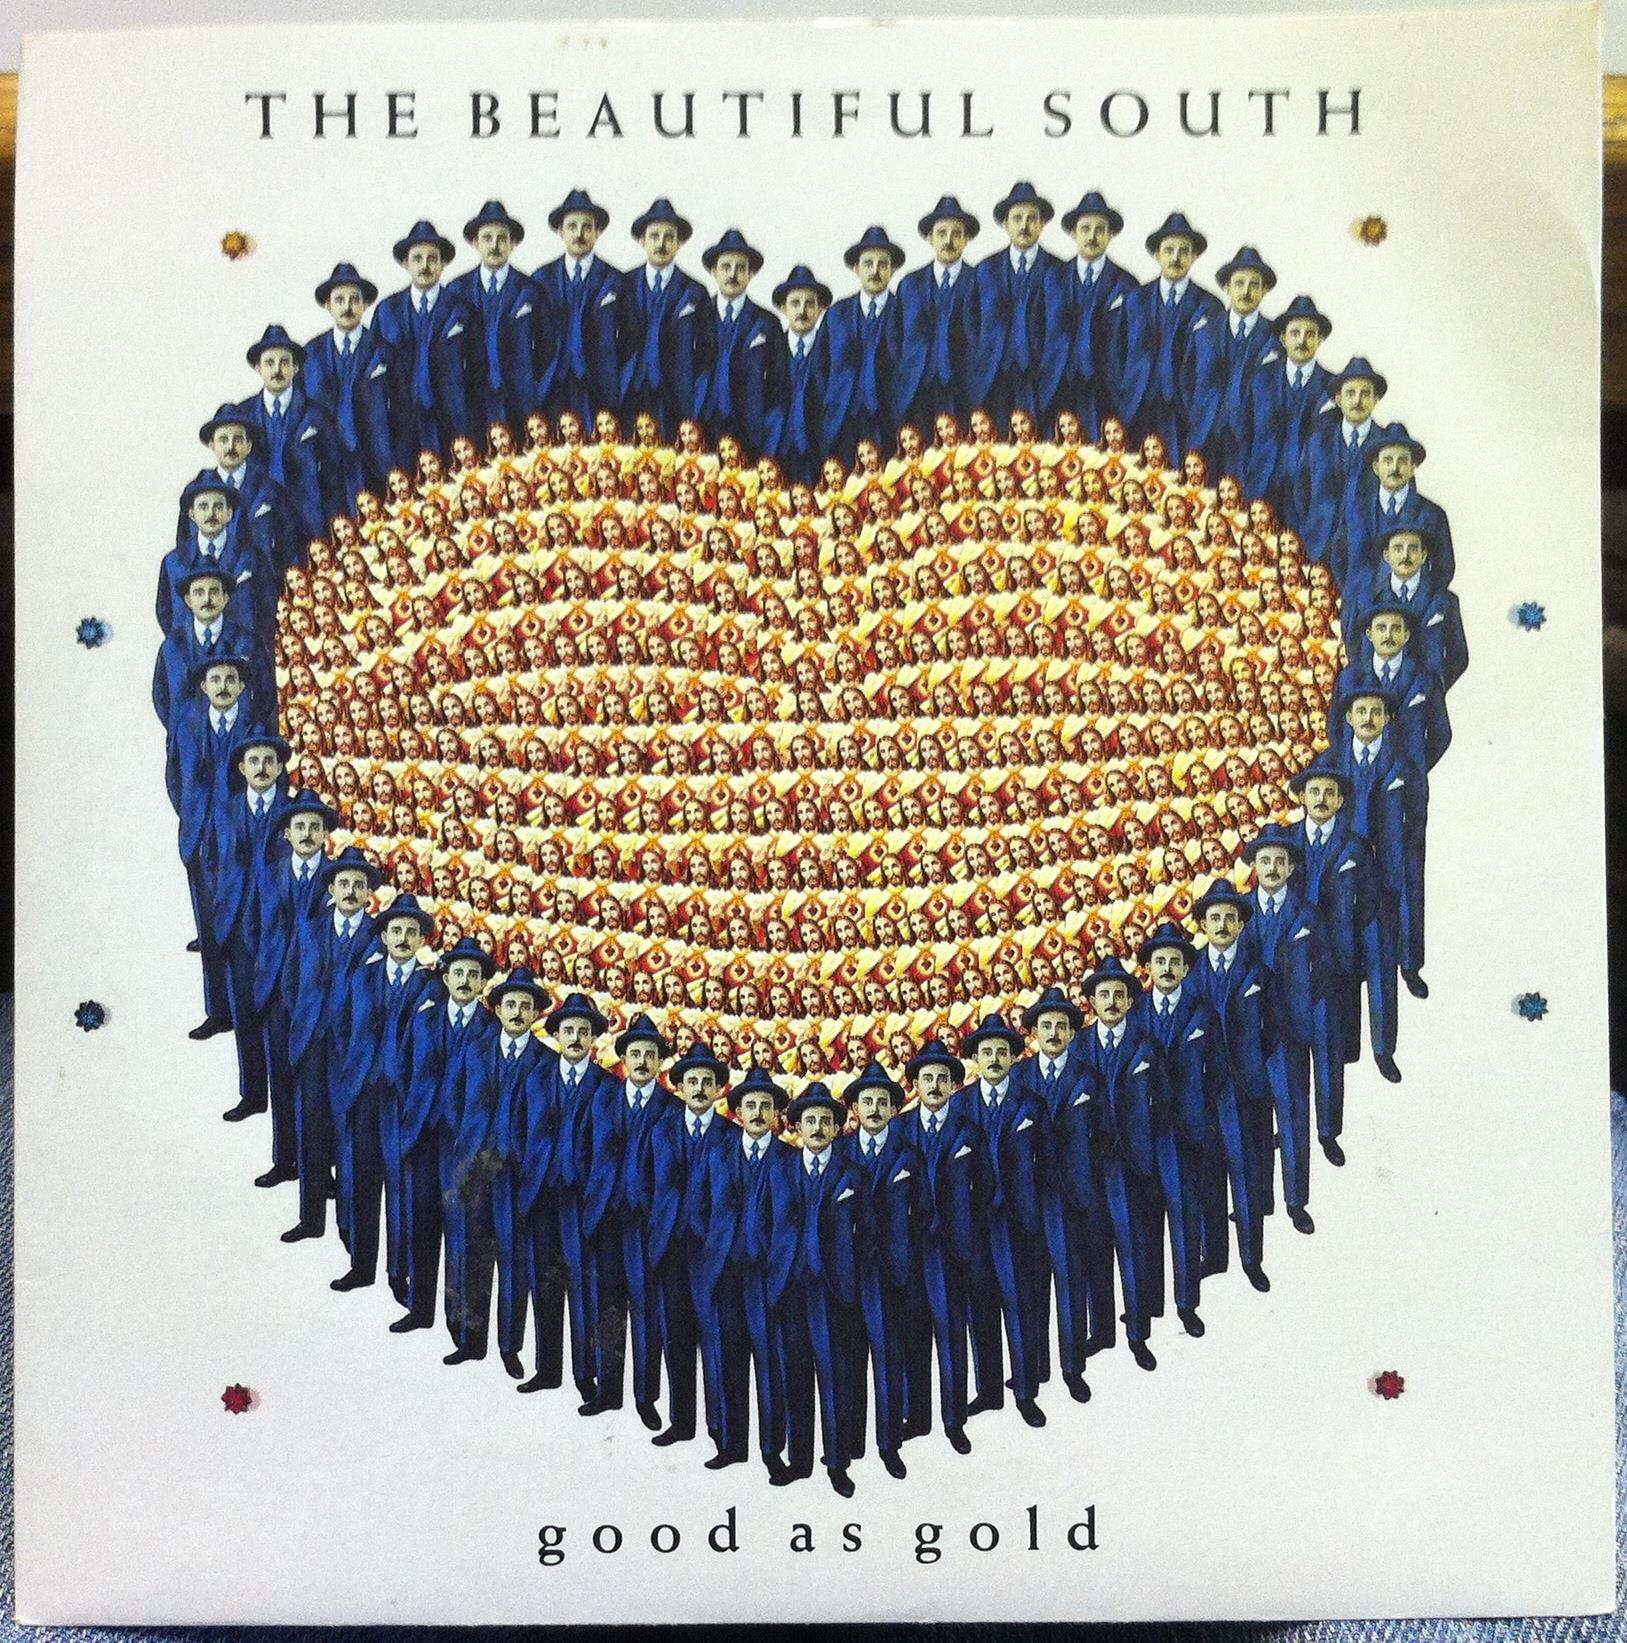 """Beautiful South - The Beautiful South Good As Gold 7"""" Mint- God 110 Vinyl 1994 Record Uk 45 (good As Gold)"""